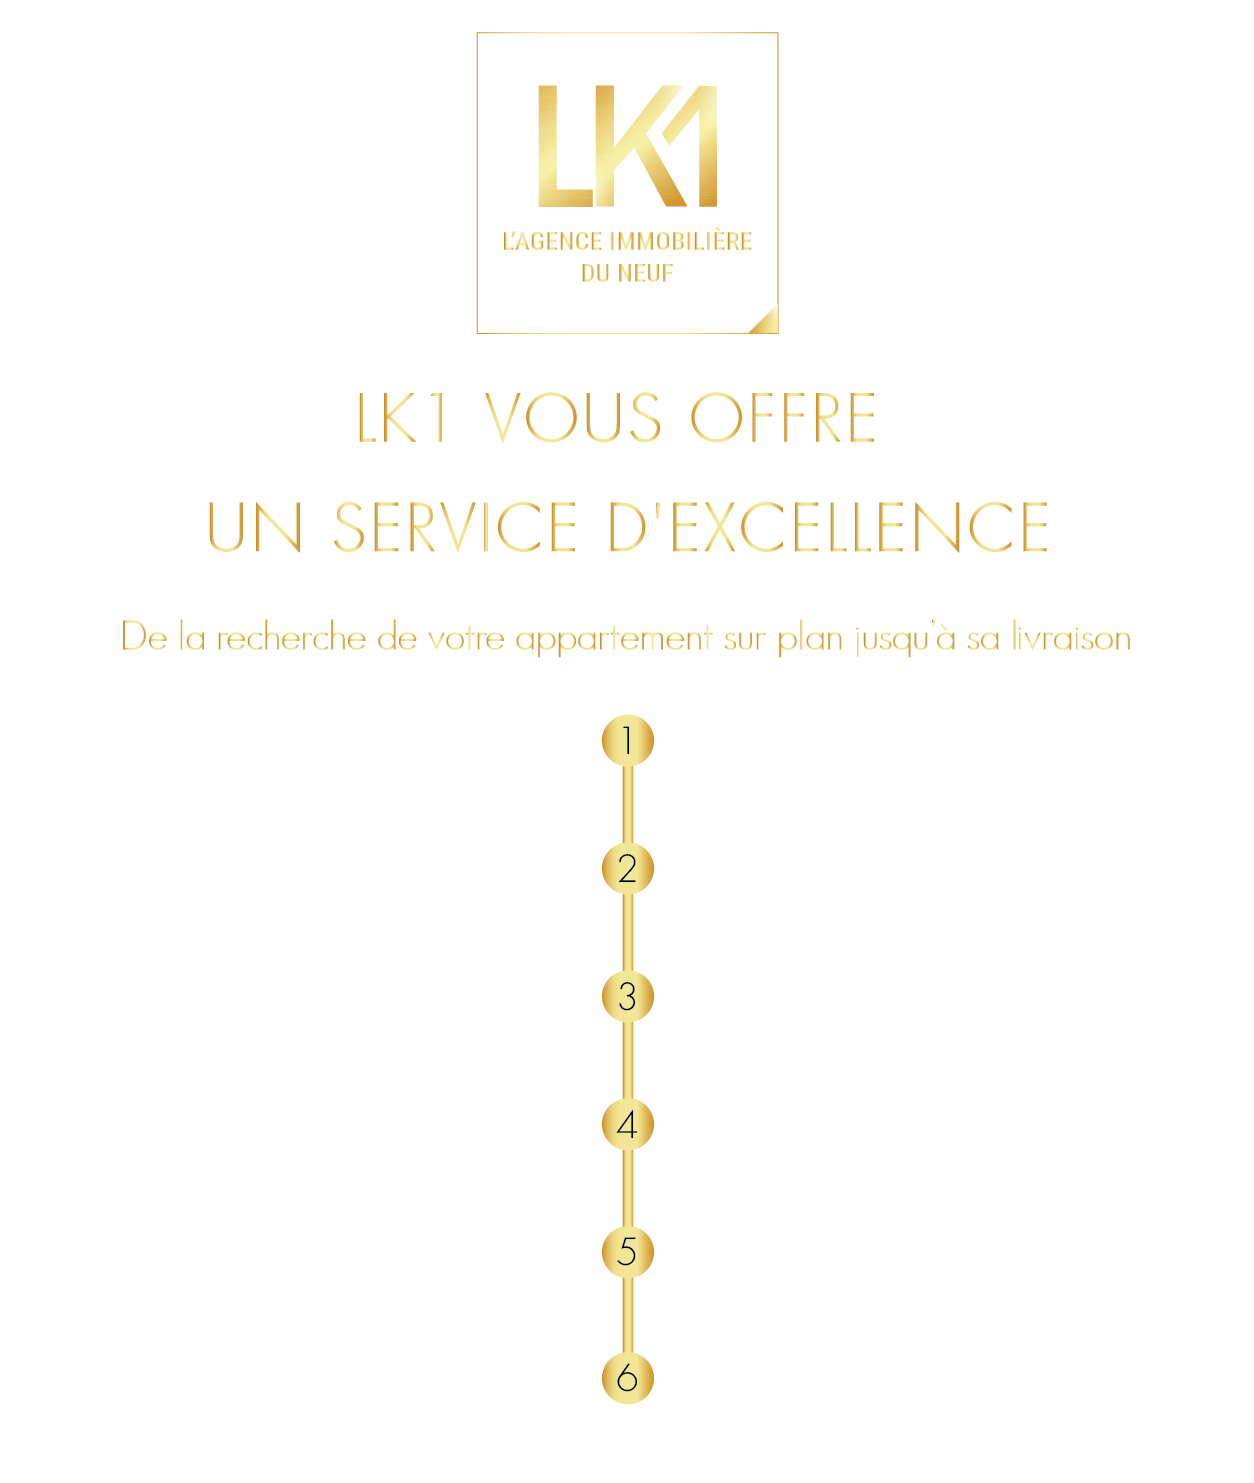 Le service lk1 agence immobili re annecy for Tous les agence immobiliere